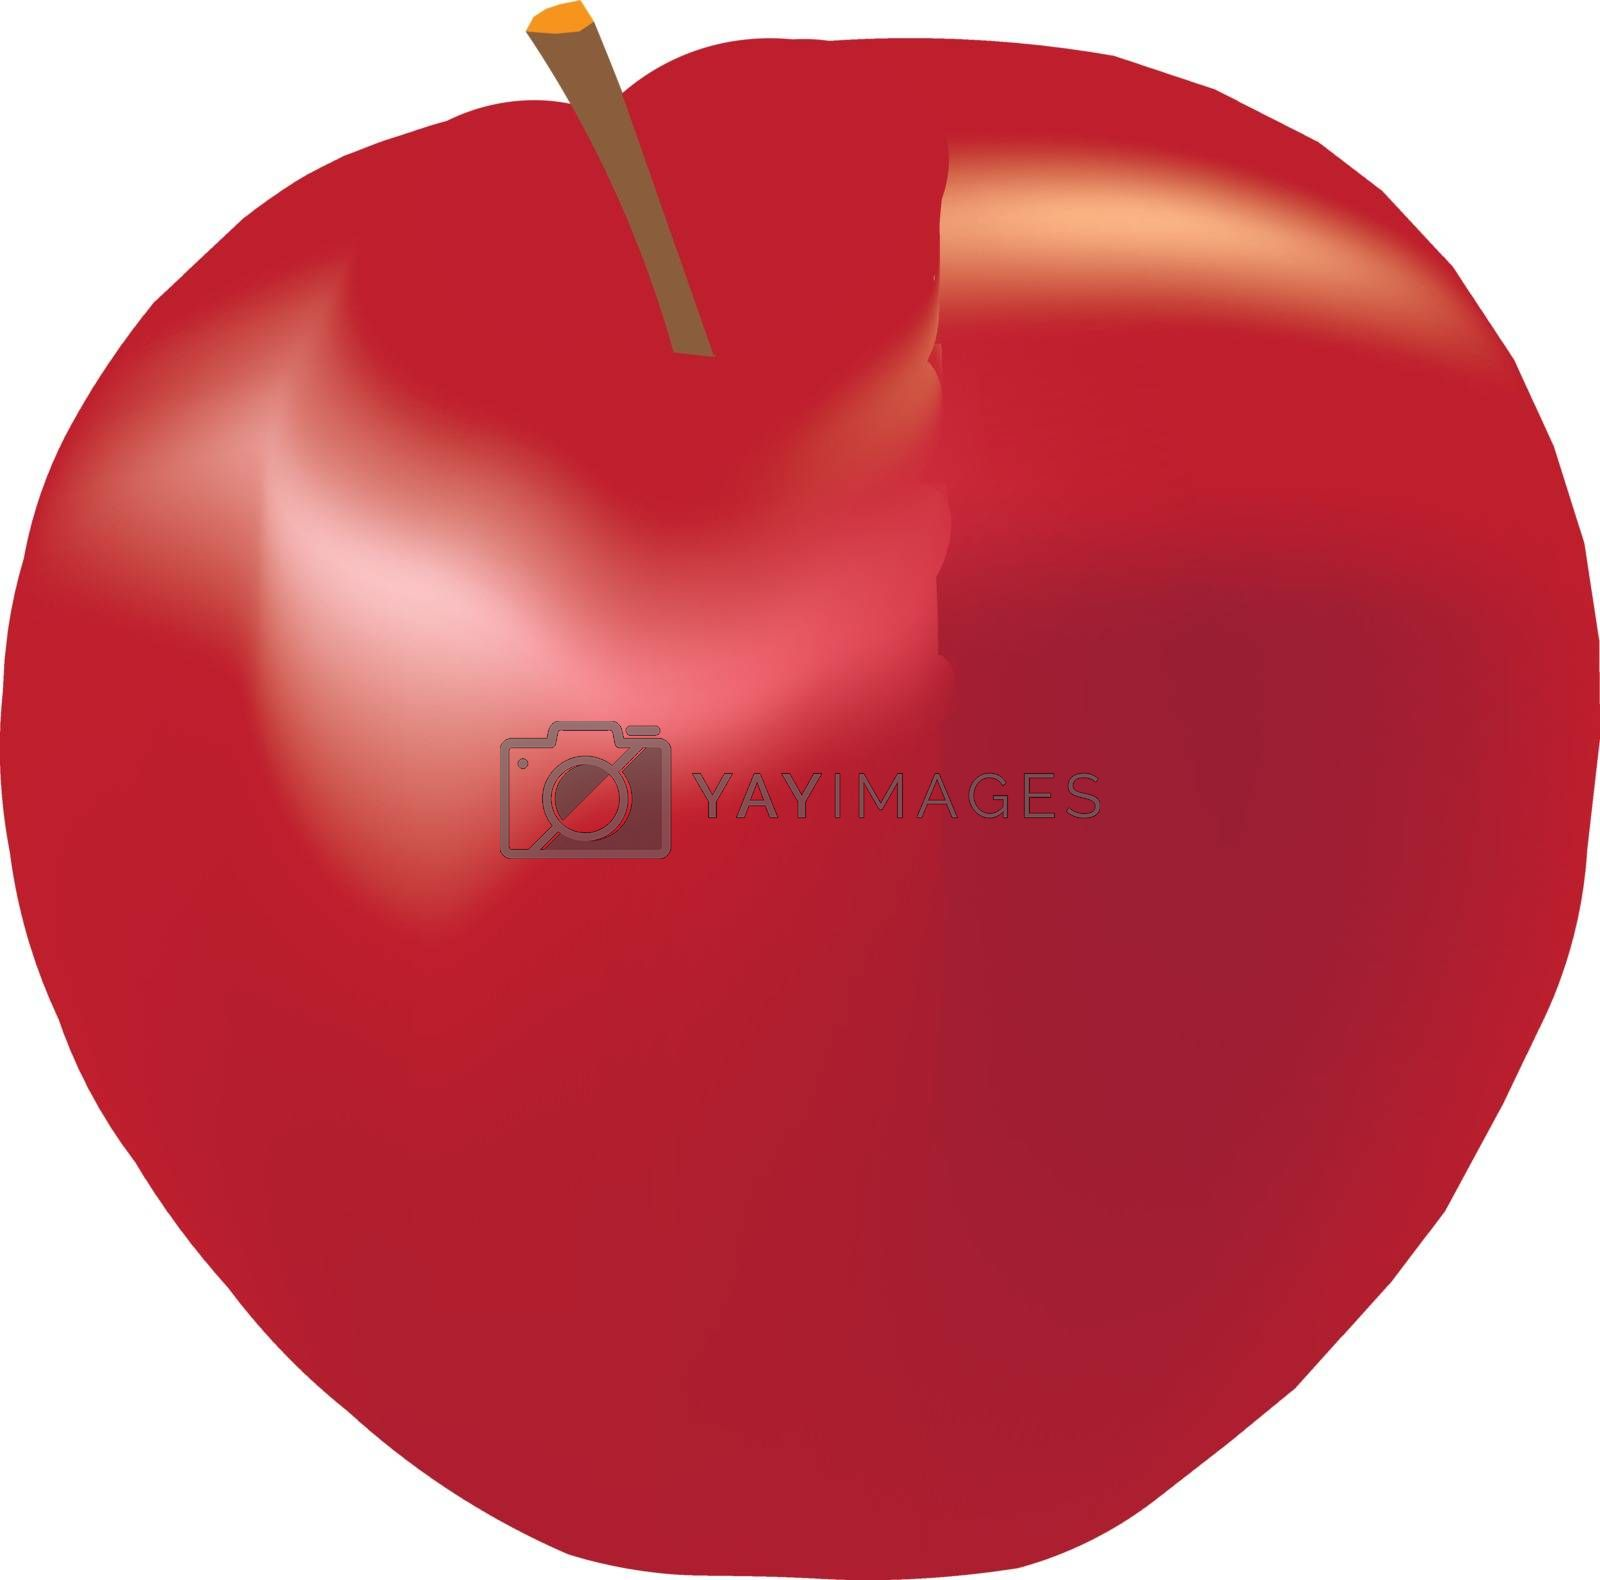 Royalty free image of Red Apple by VIPDesignUSA